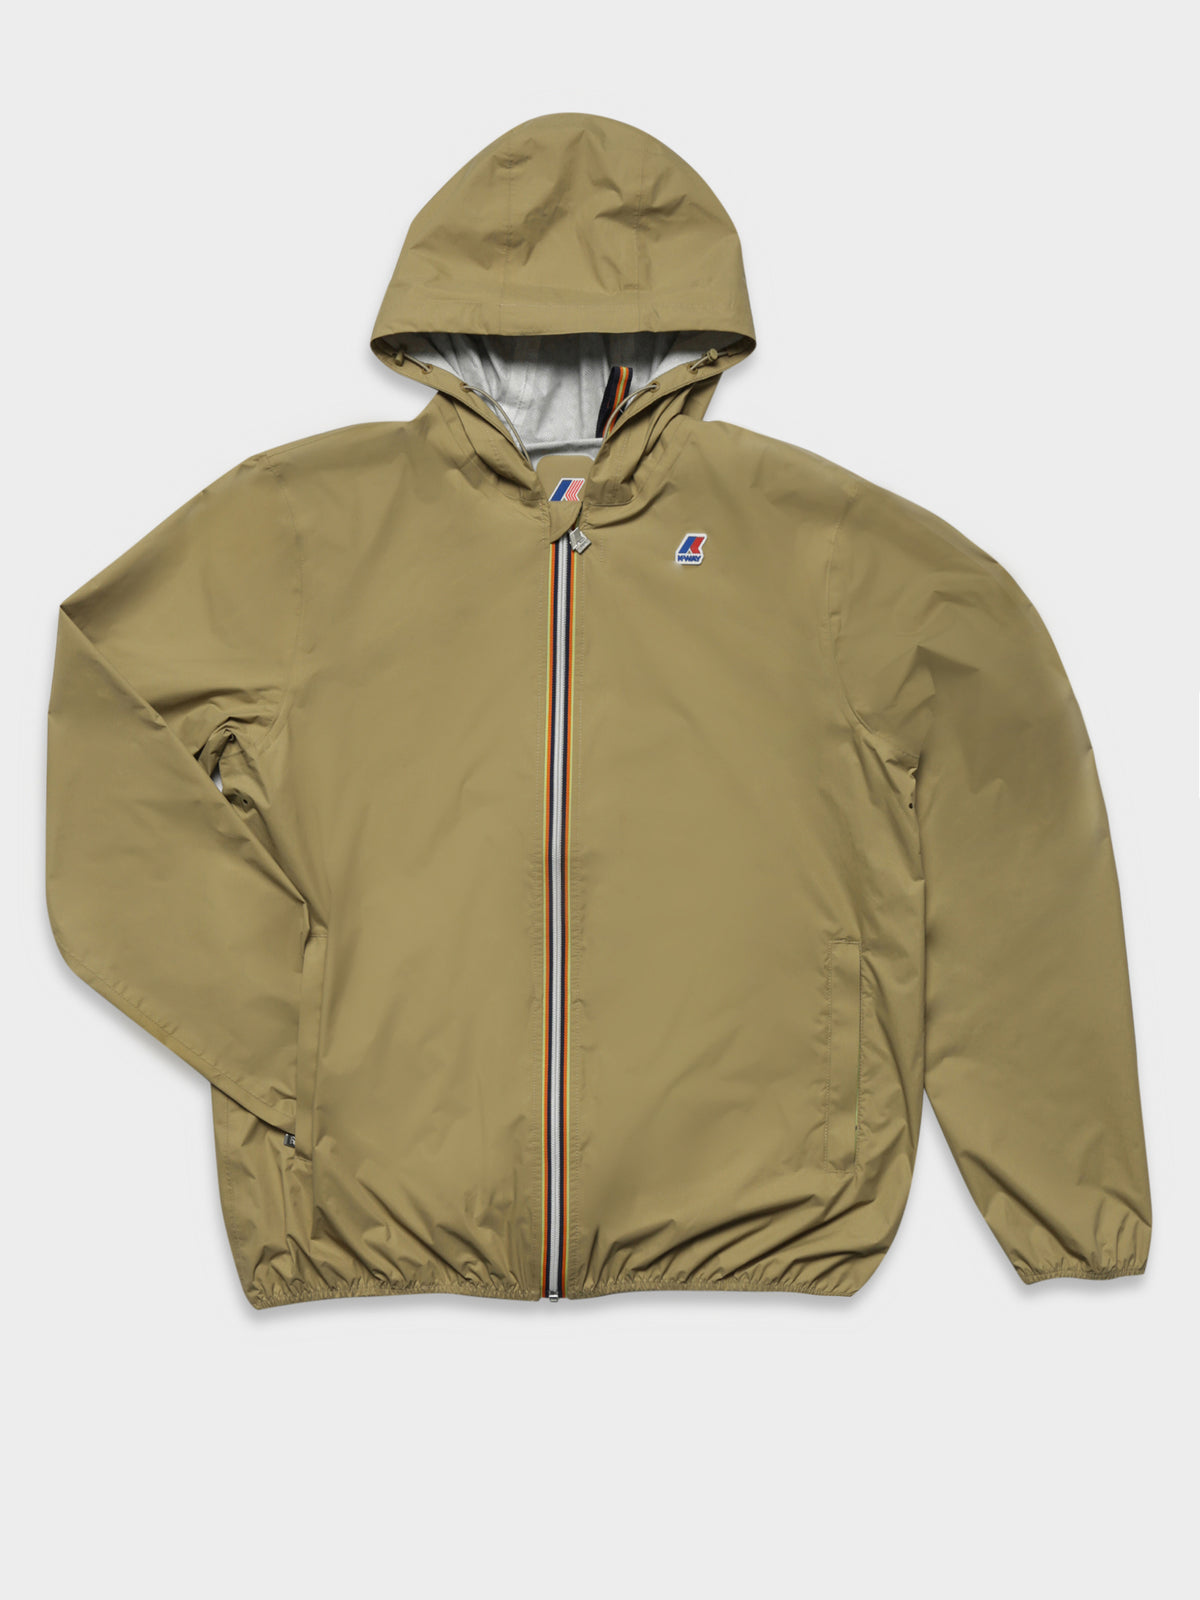 Jack Plus.Dot Packable Waterproof Rain Jacket in Beige Khaki